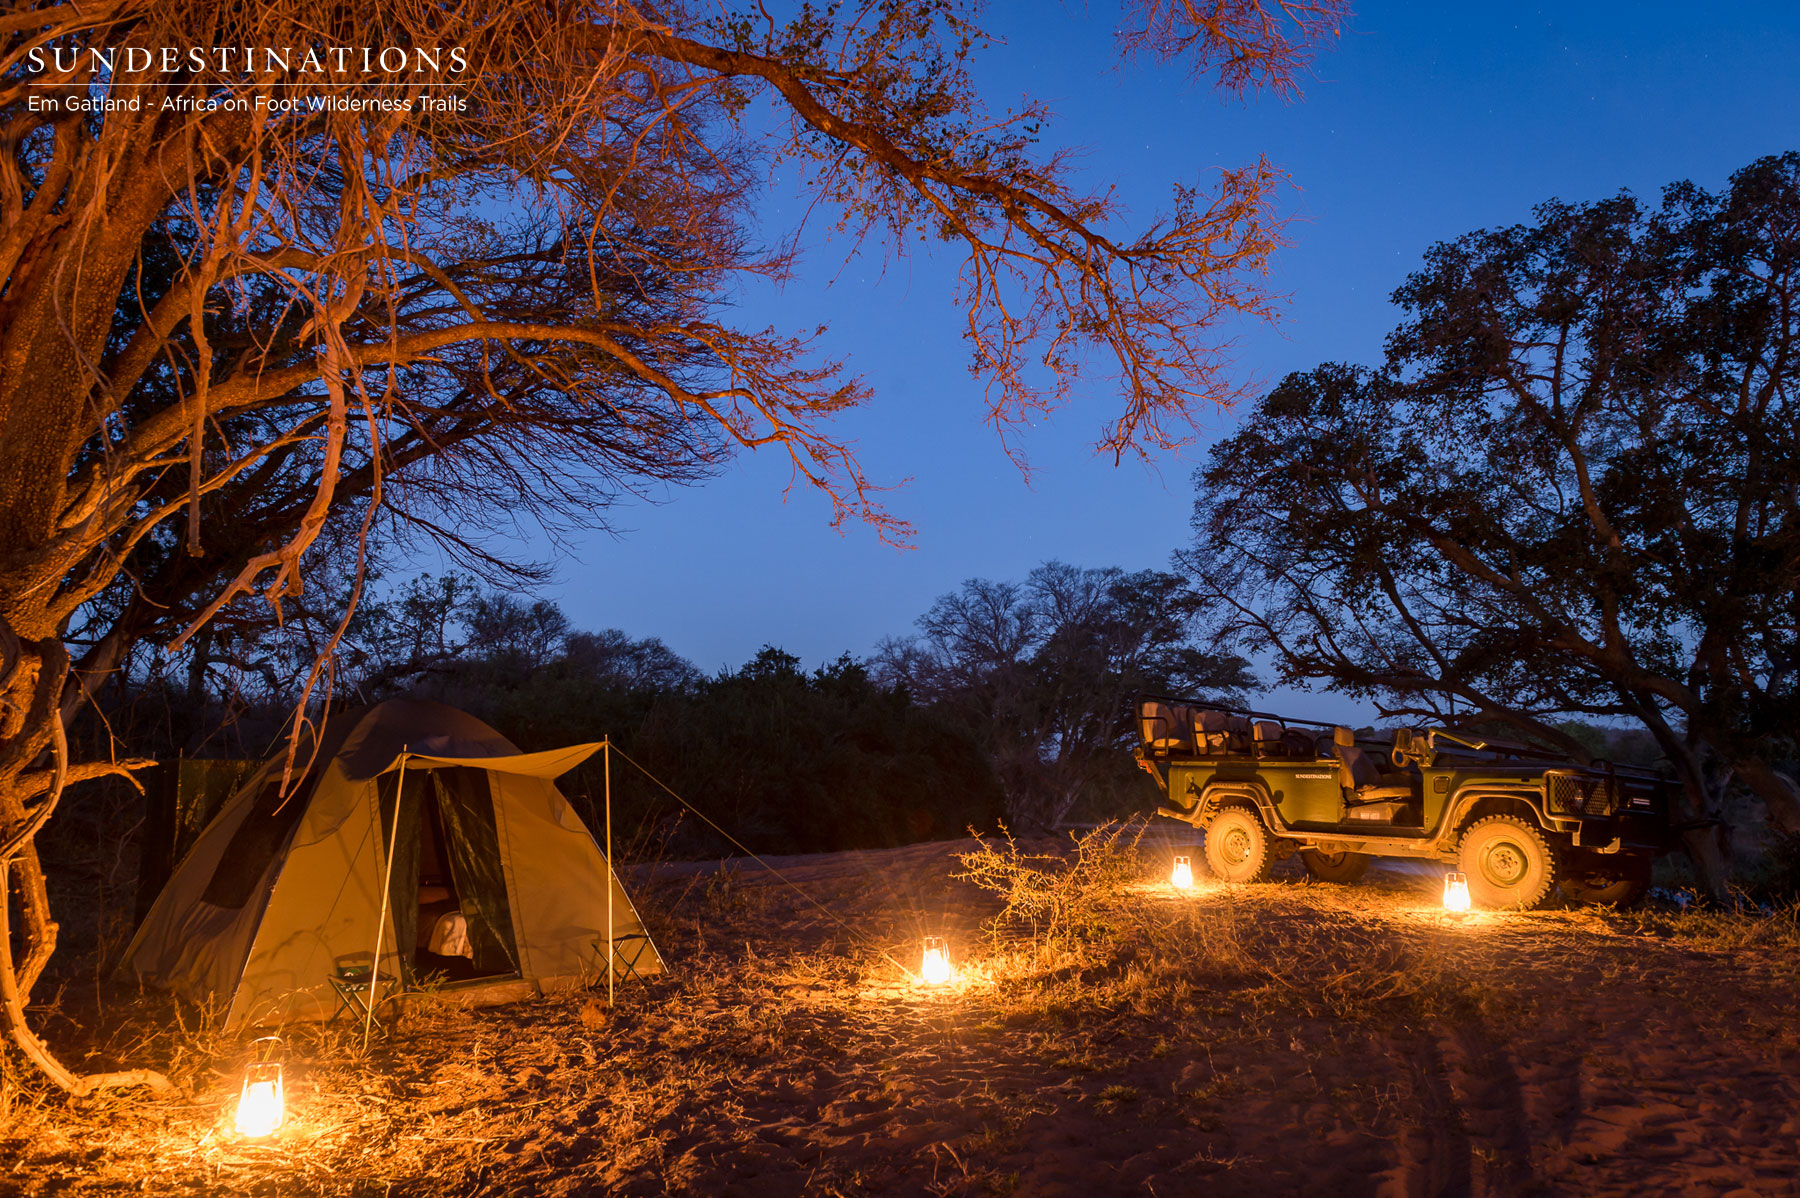 Camp Life at Africa on Foot Wilderness Trails